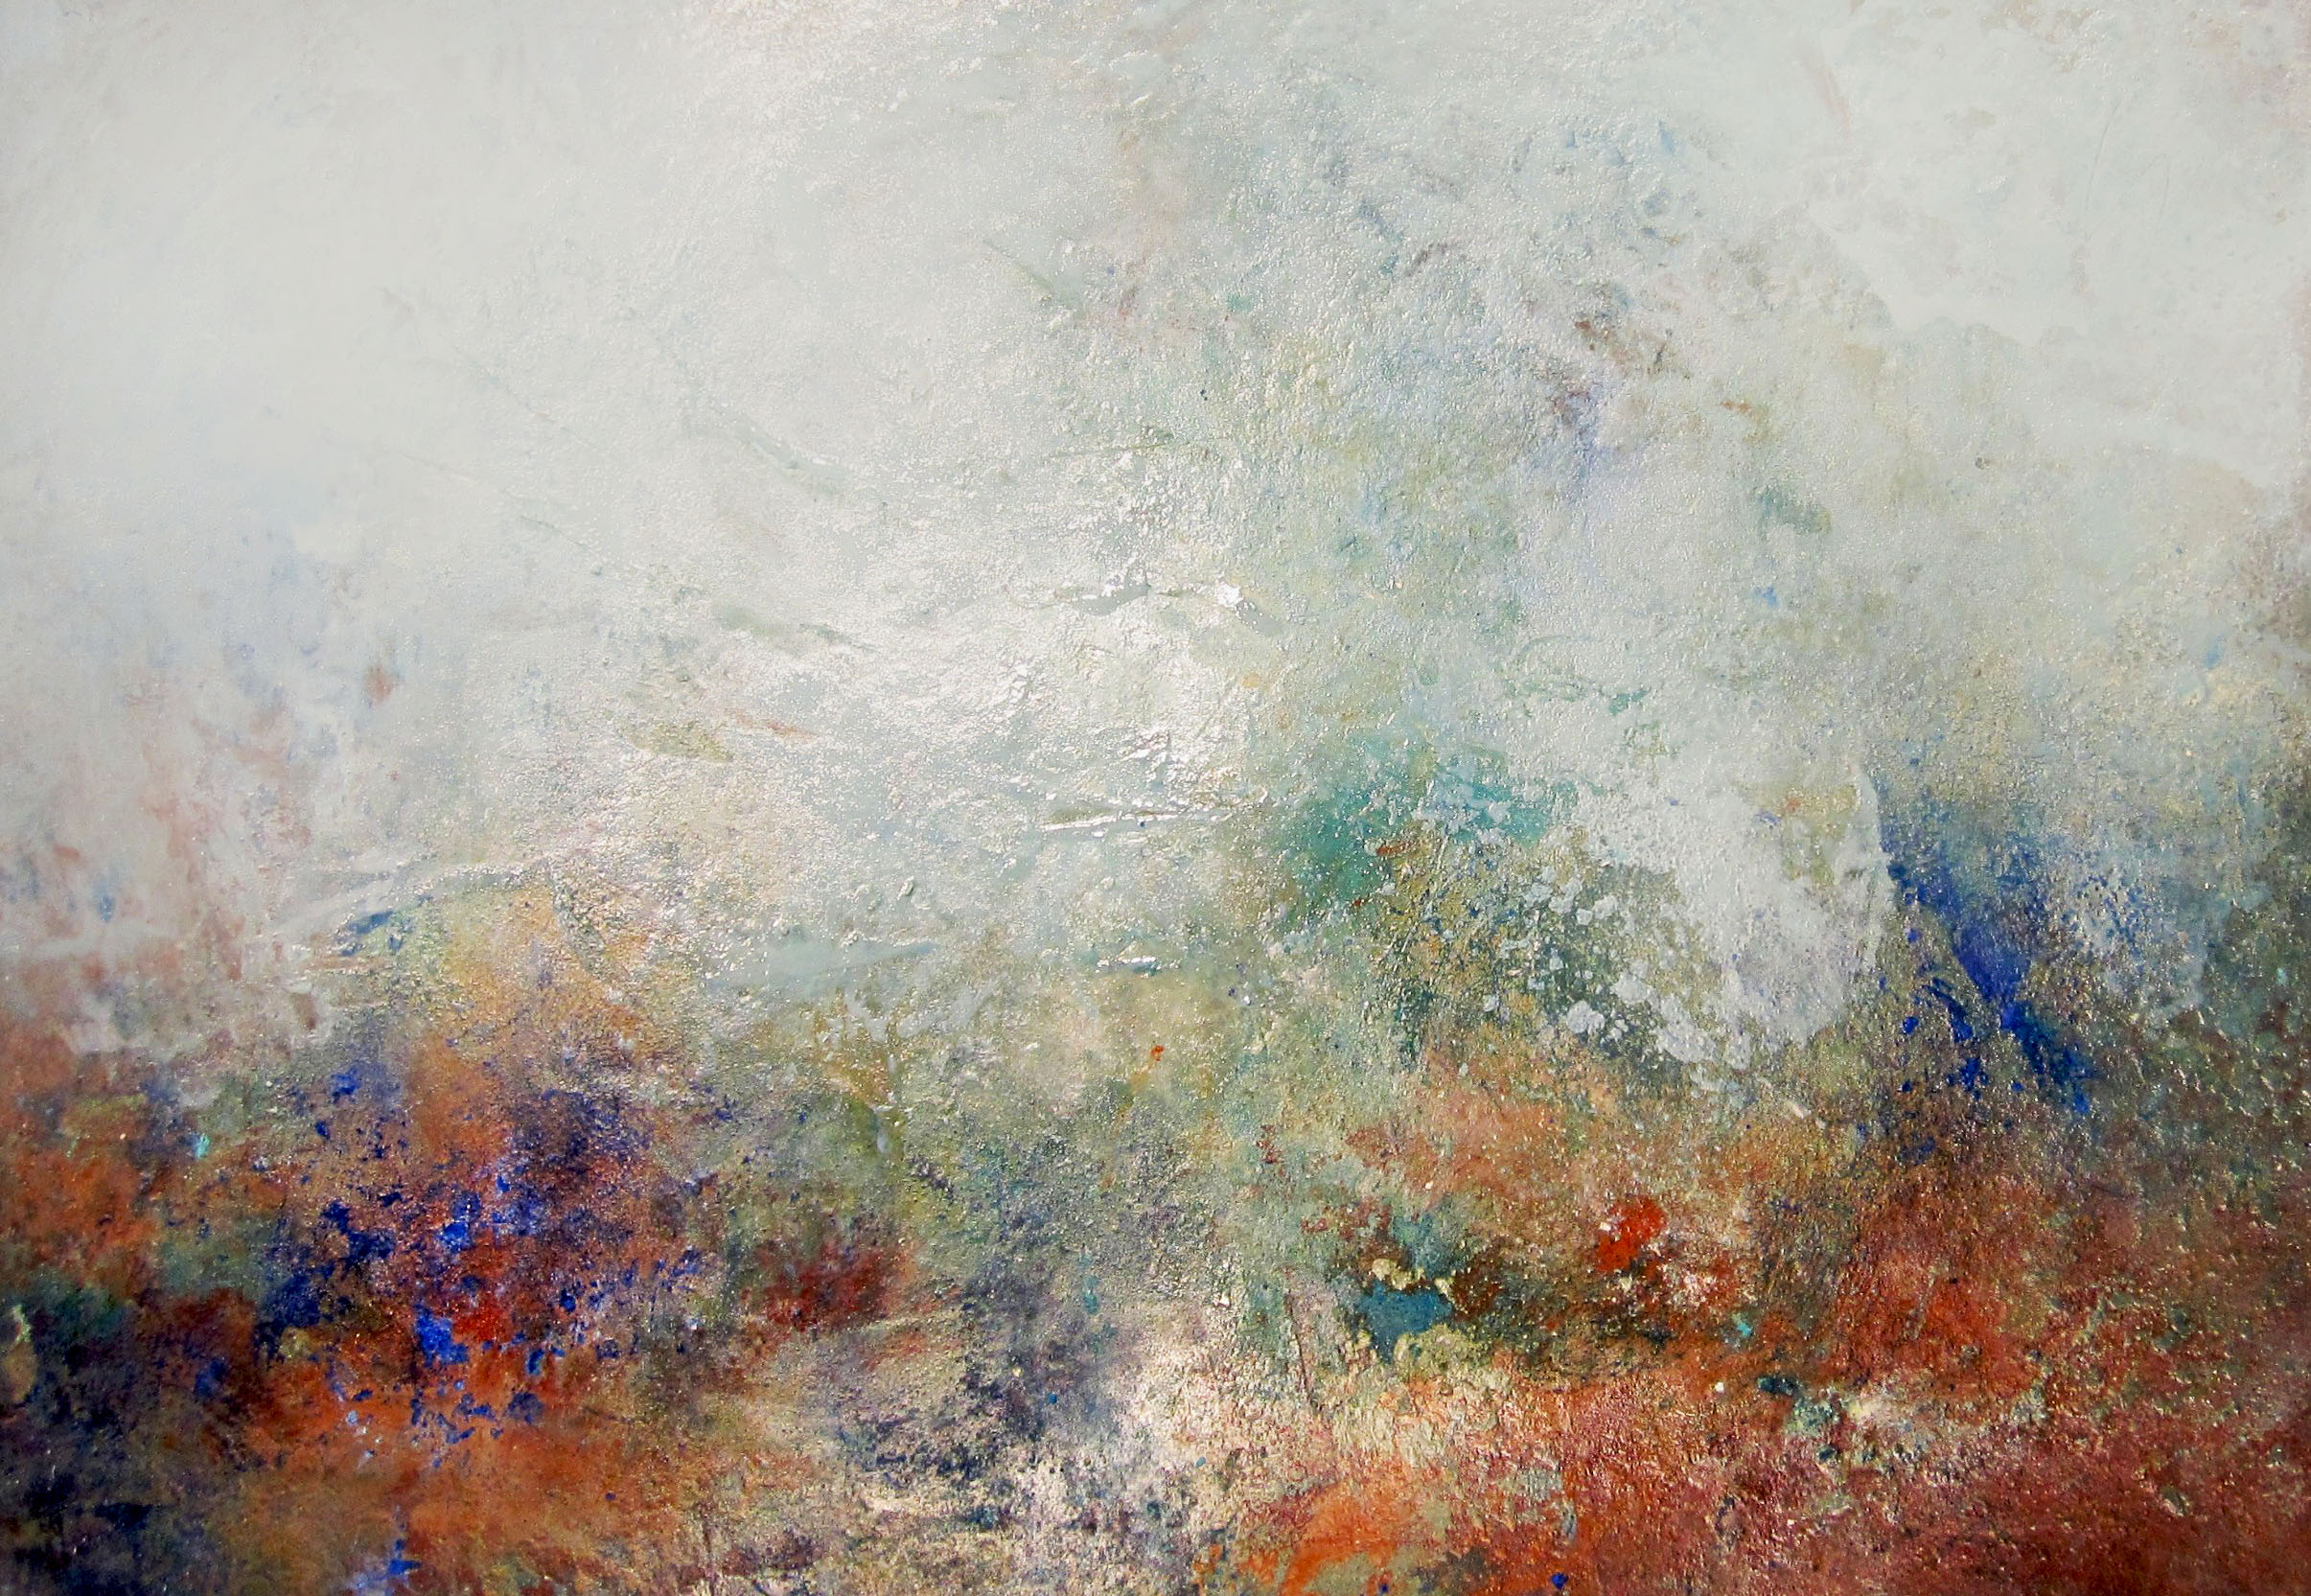 Free Download Wall Art Painting Wallpaper Abstract Wallpaper With